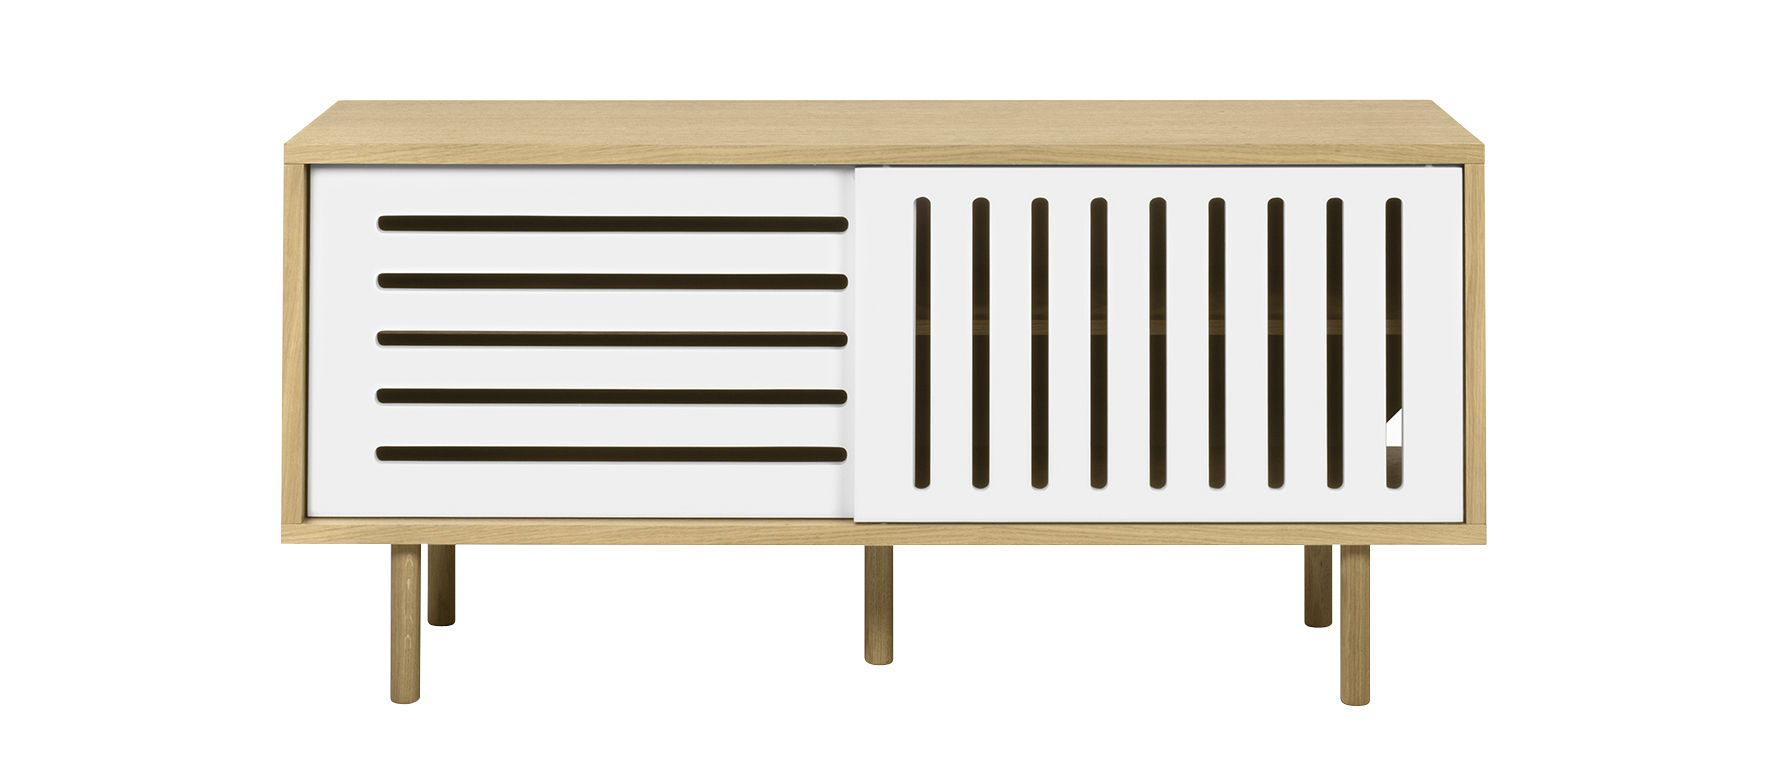 Furniture - Dressers & Storage Units - Amsterdam Stripes Dresser - / TV stand - L 135 cm by POP UP HOME - Oak / White doors - Oak plywood, Painted MDF, Particle board